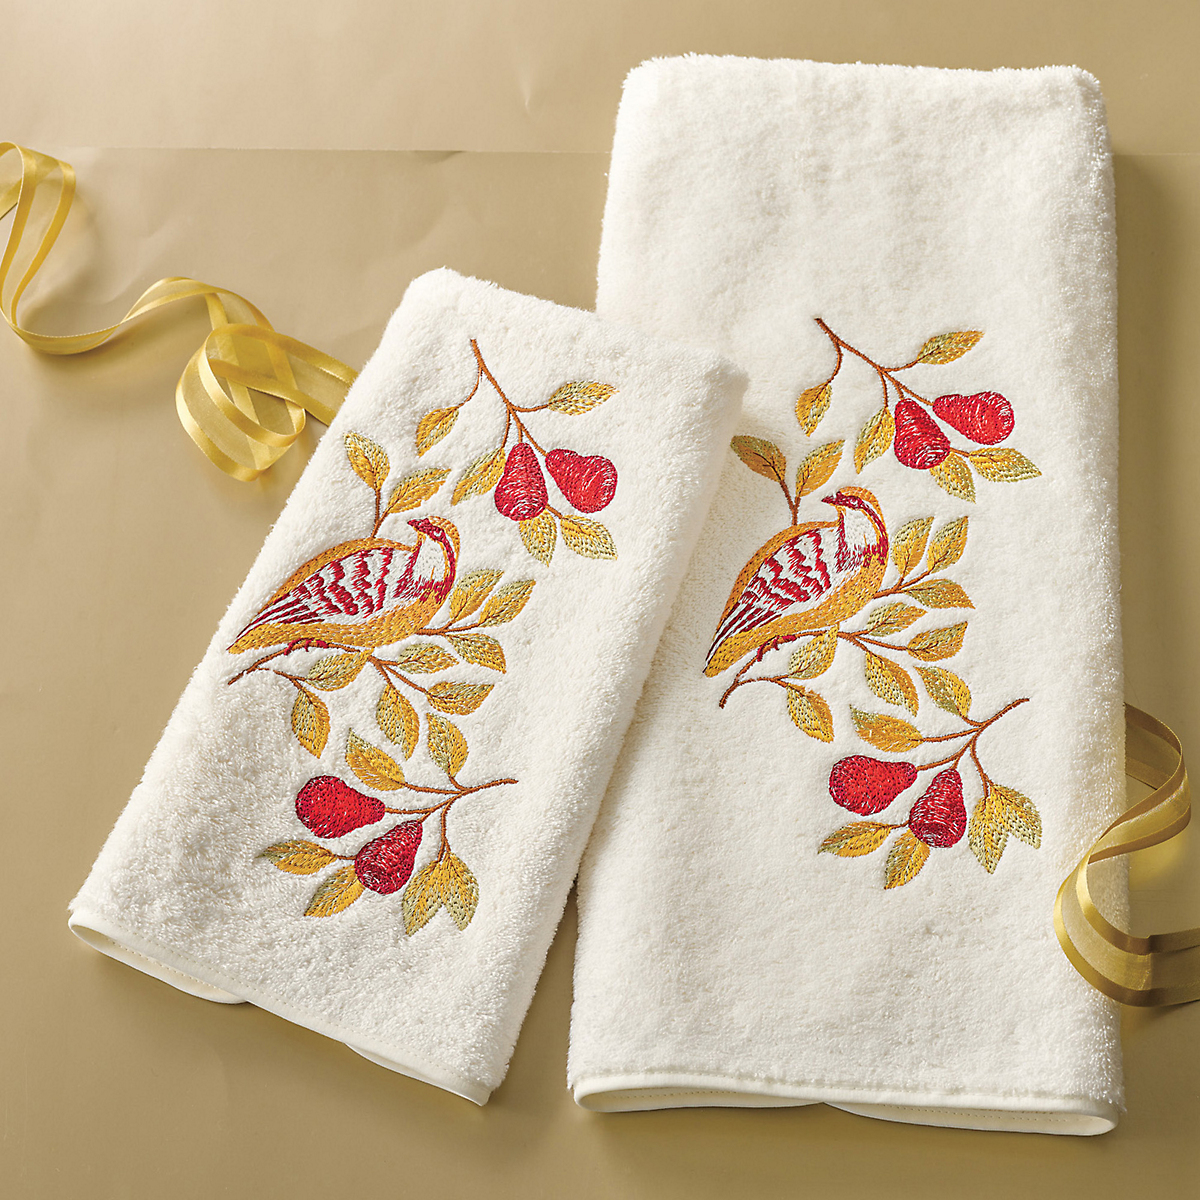 Embroidered Towels Online: Embroidered Partridge Guest Towels